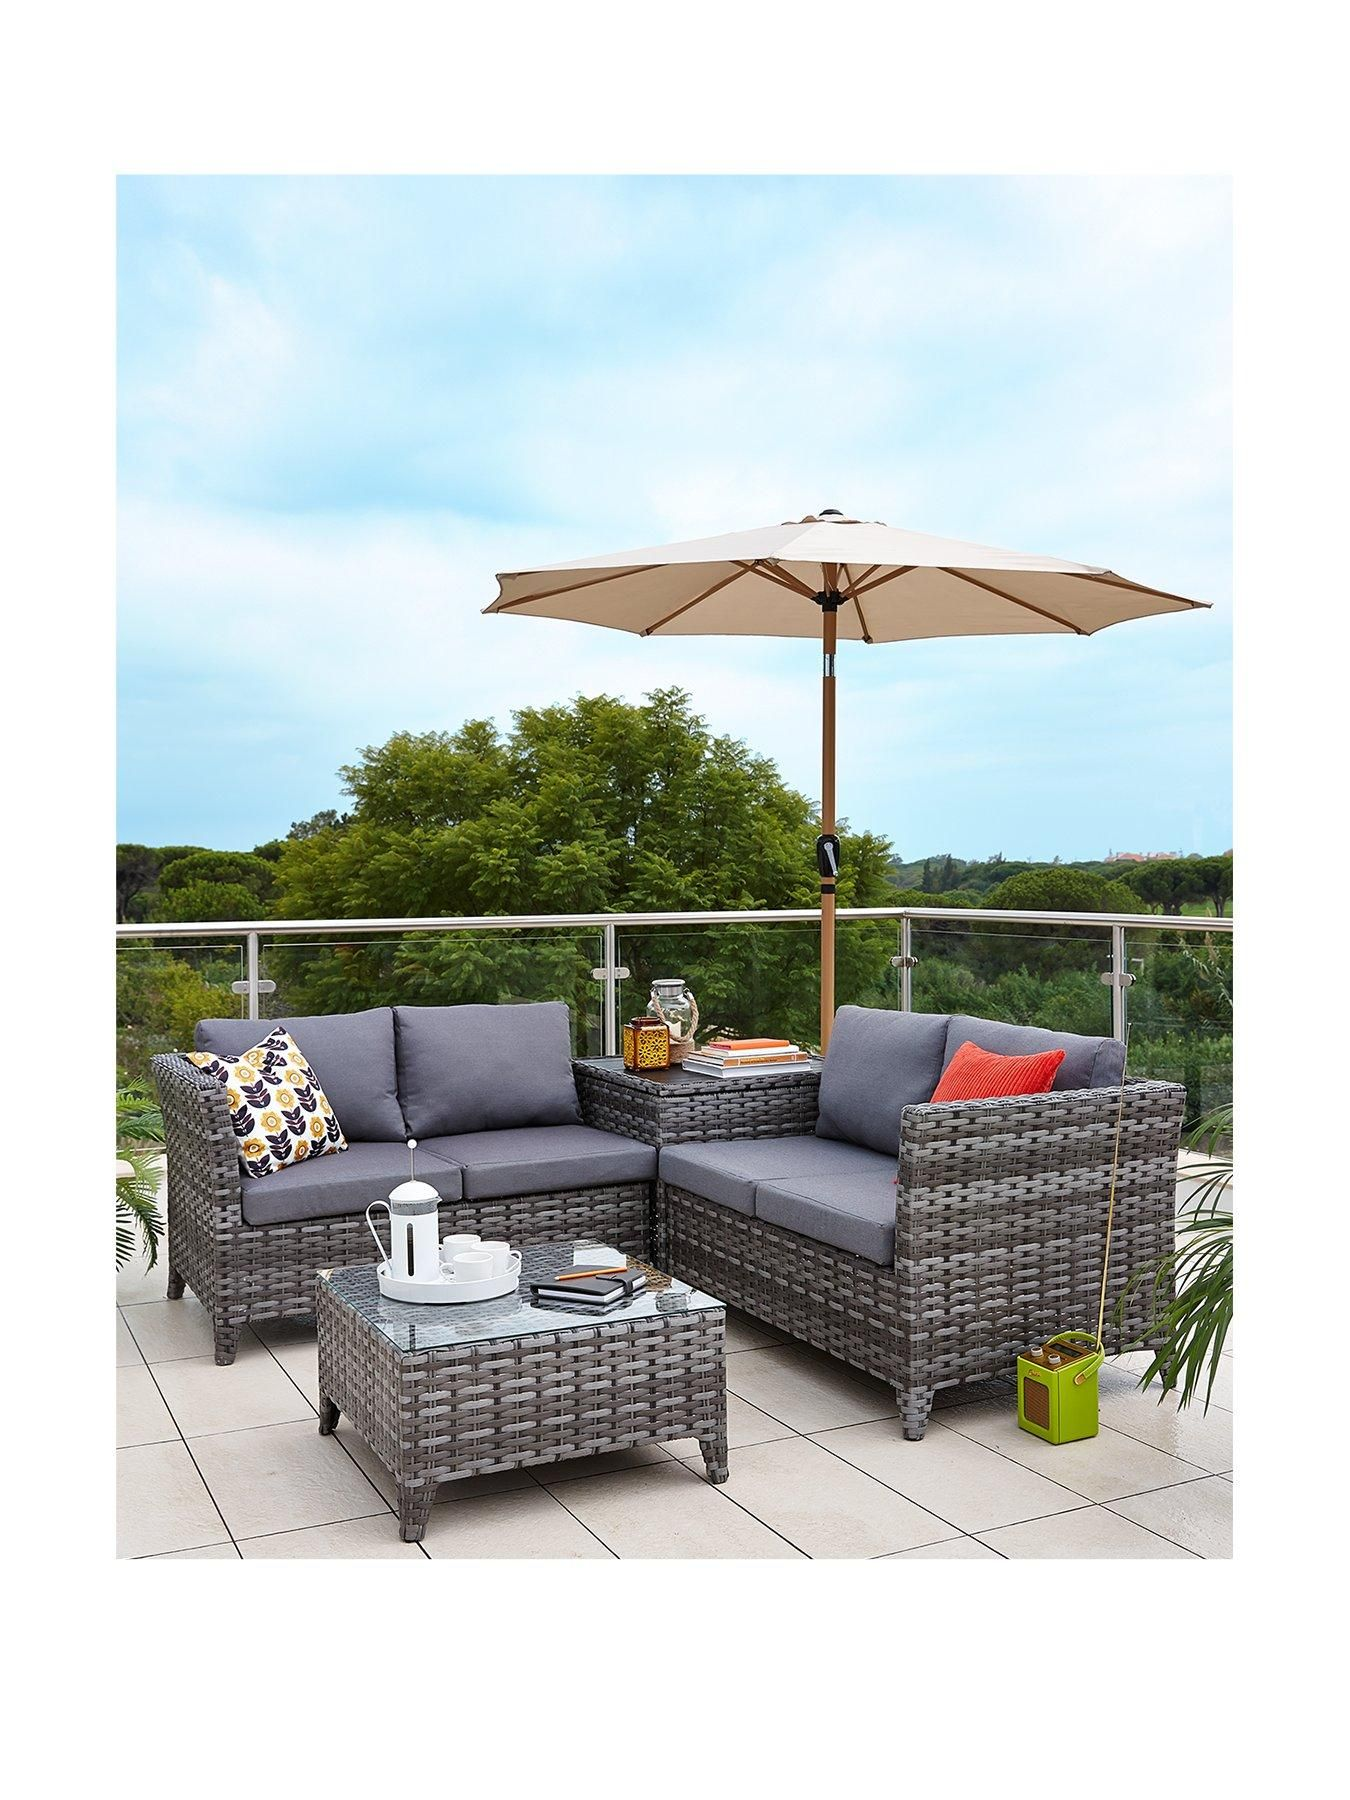 Make the most of your outdoor space with this Aruba 4-Seater Rattan Corner  Set.It cleverly combines a pair of stylish 2-seater sofas together to  create a ... 11a78caddc